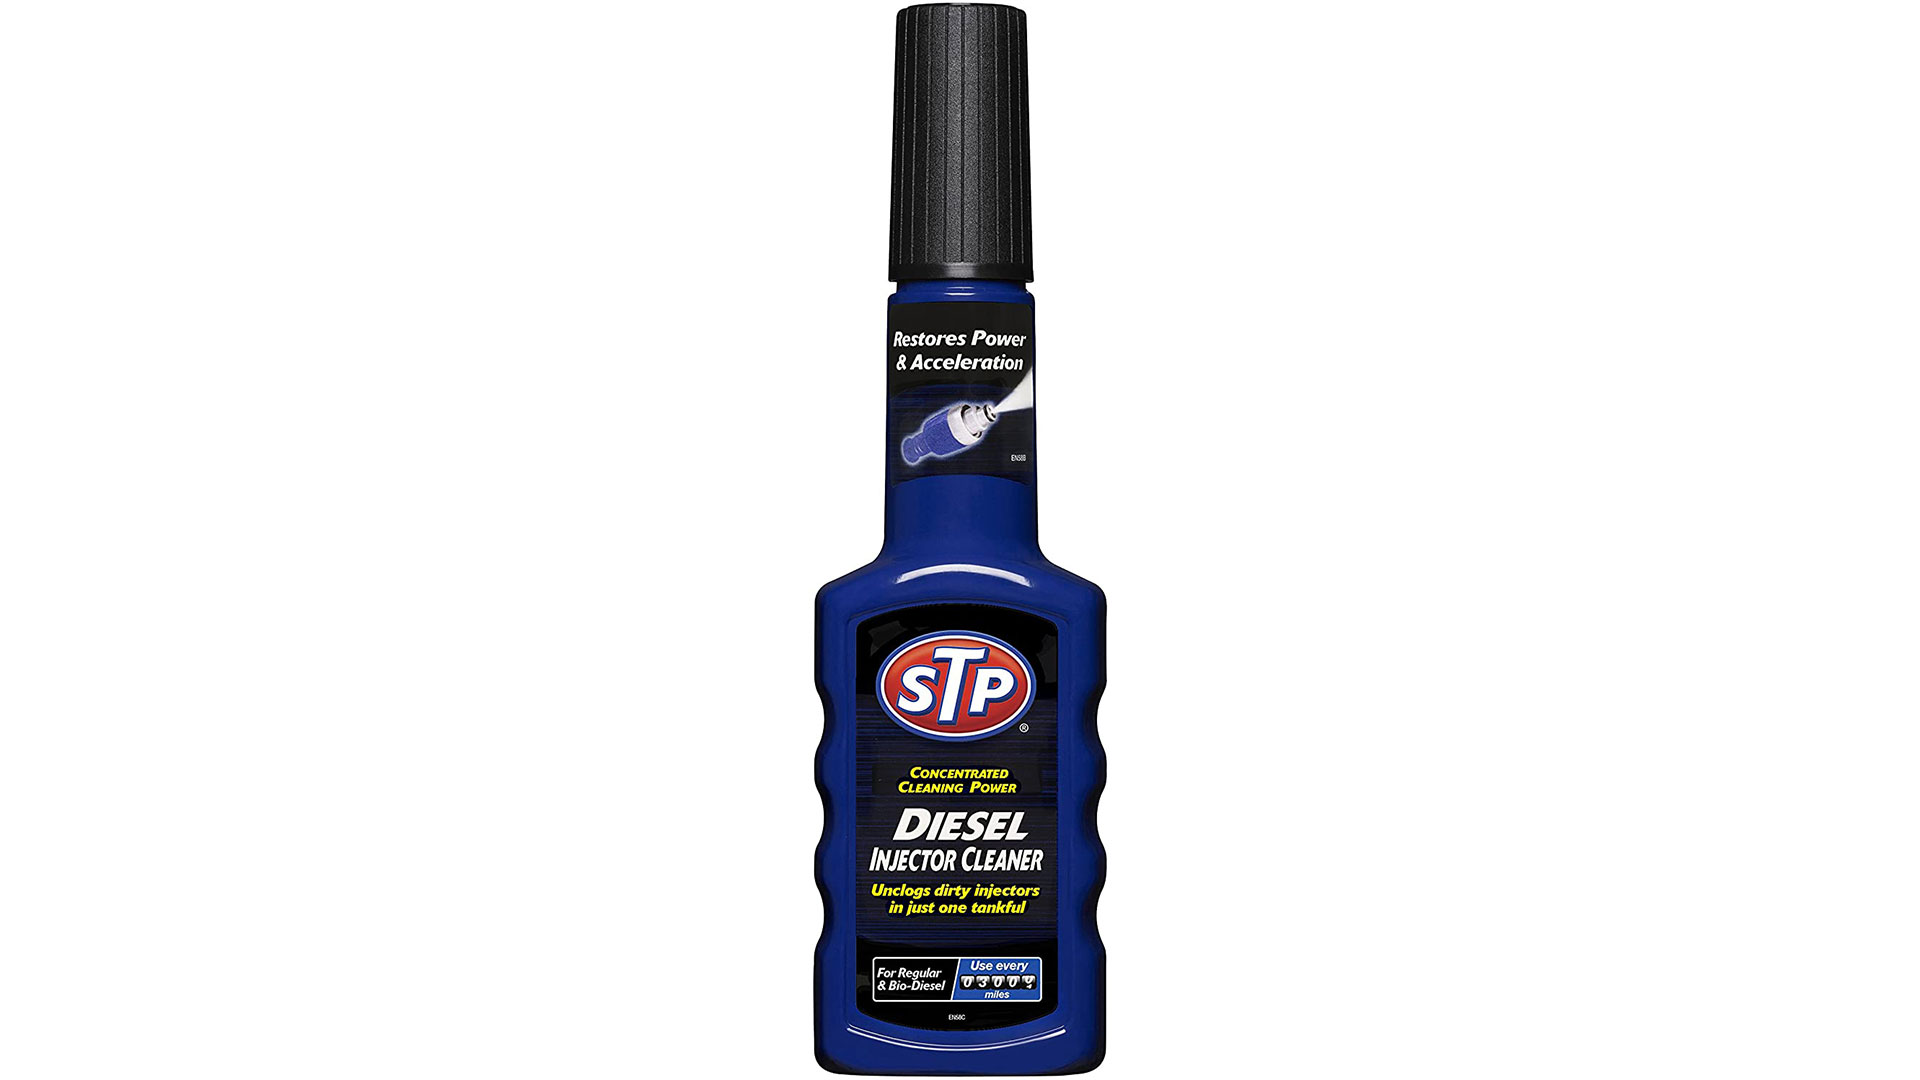 stp diesel injector cleaner